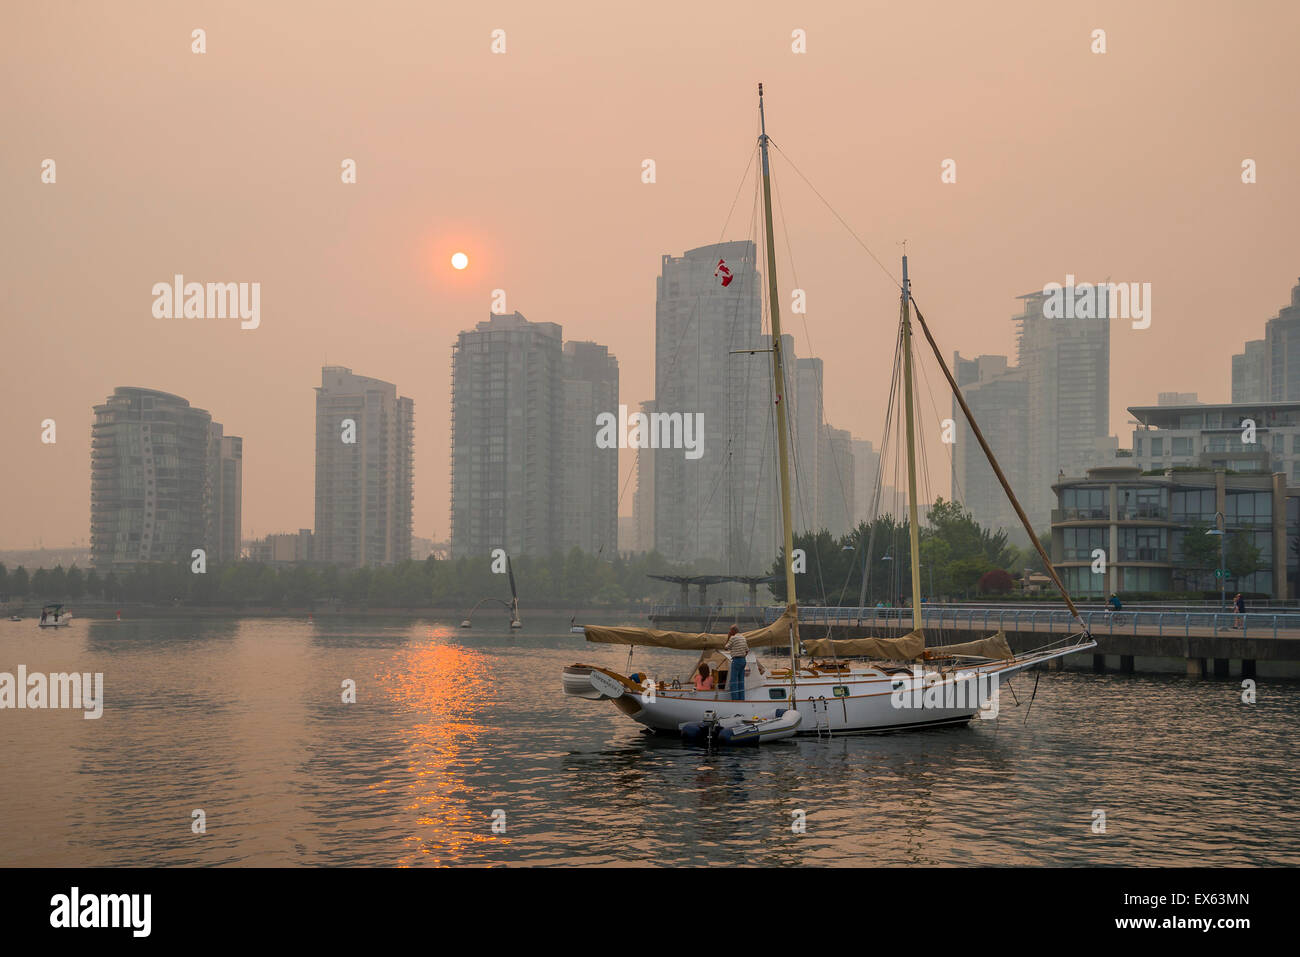 record high pollution level. Smoky sunset due to forest fires, False Creek, Vancouver, British Columbia, Canada - Stock Image